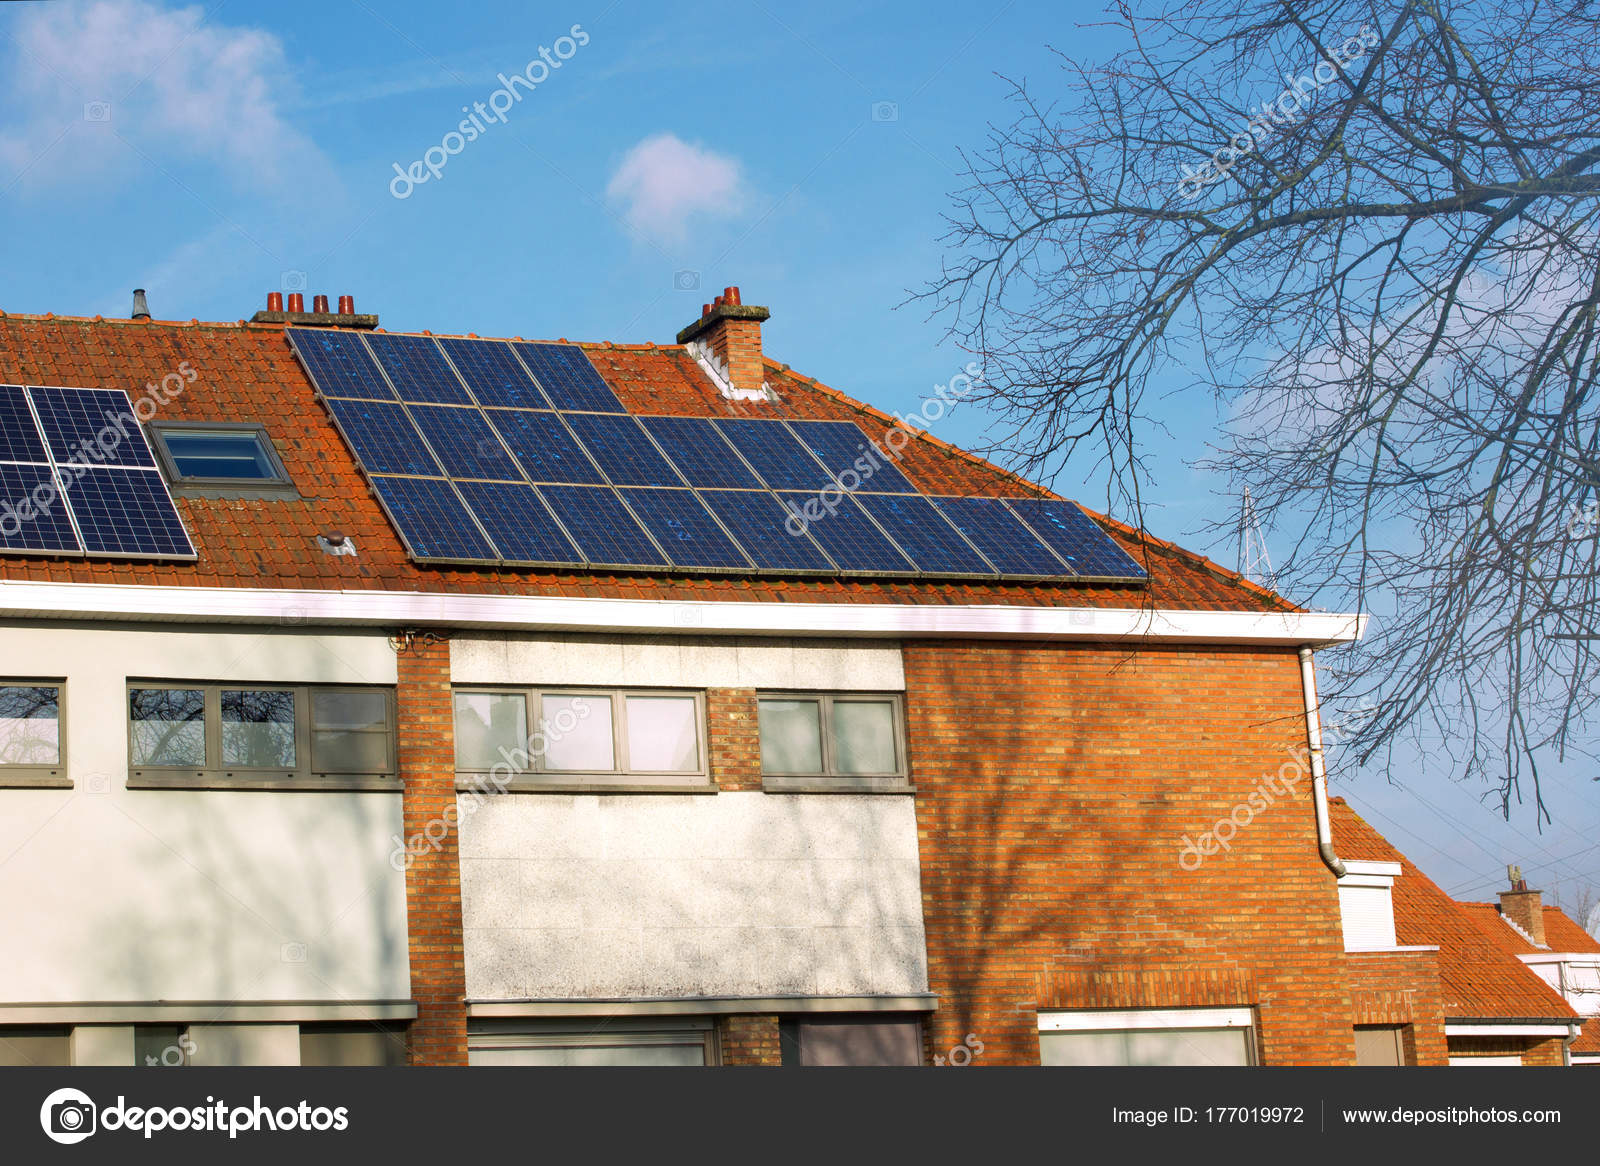 solar panels on a tiled roof — Stock Photo © andre2013 #177019972